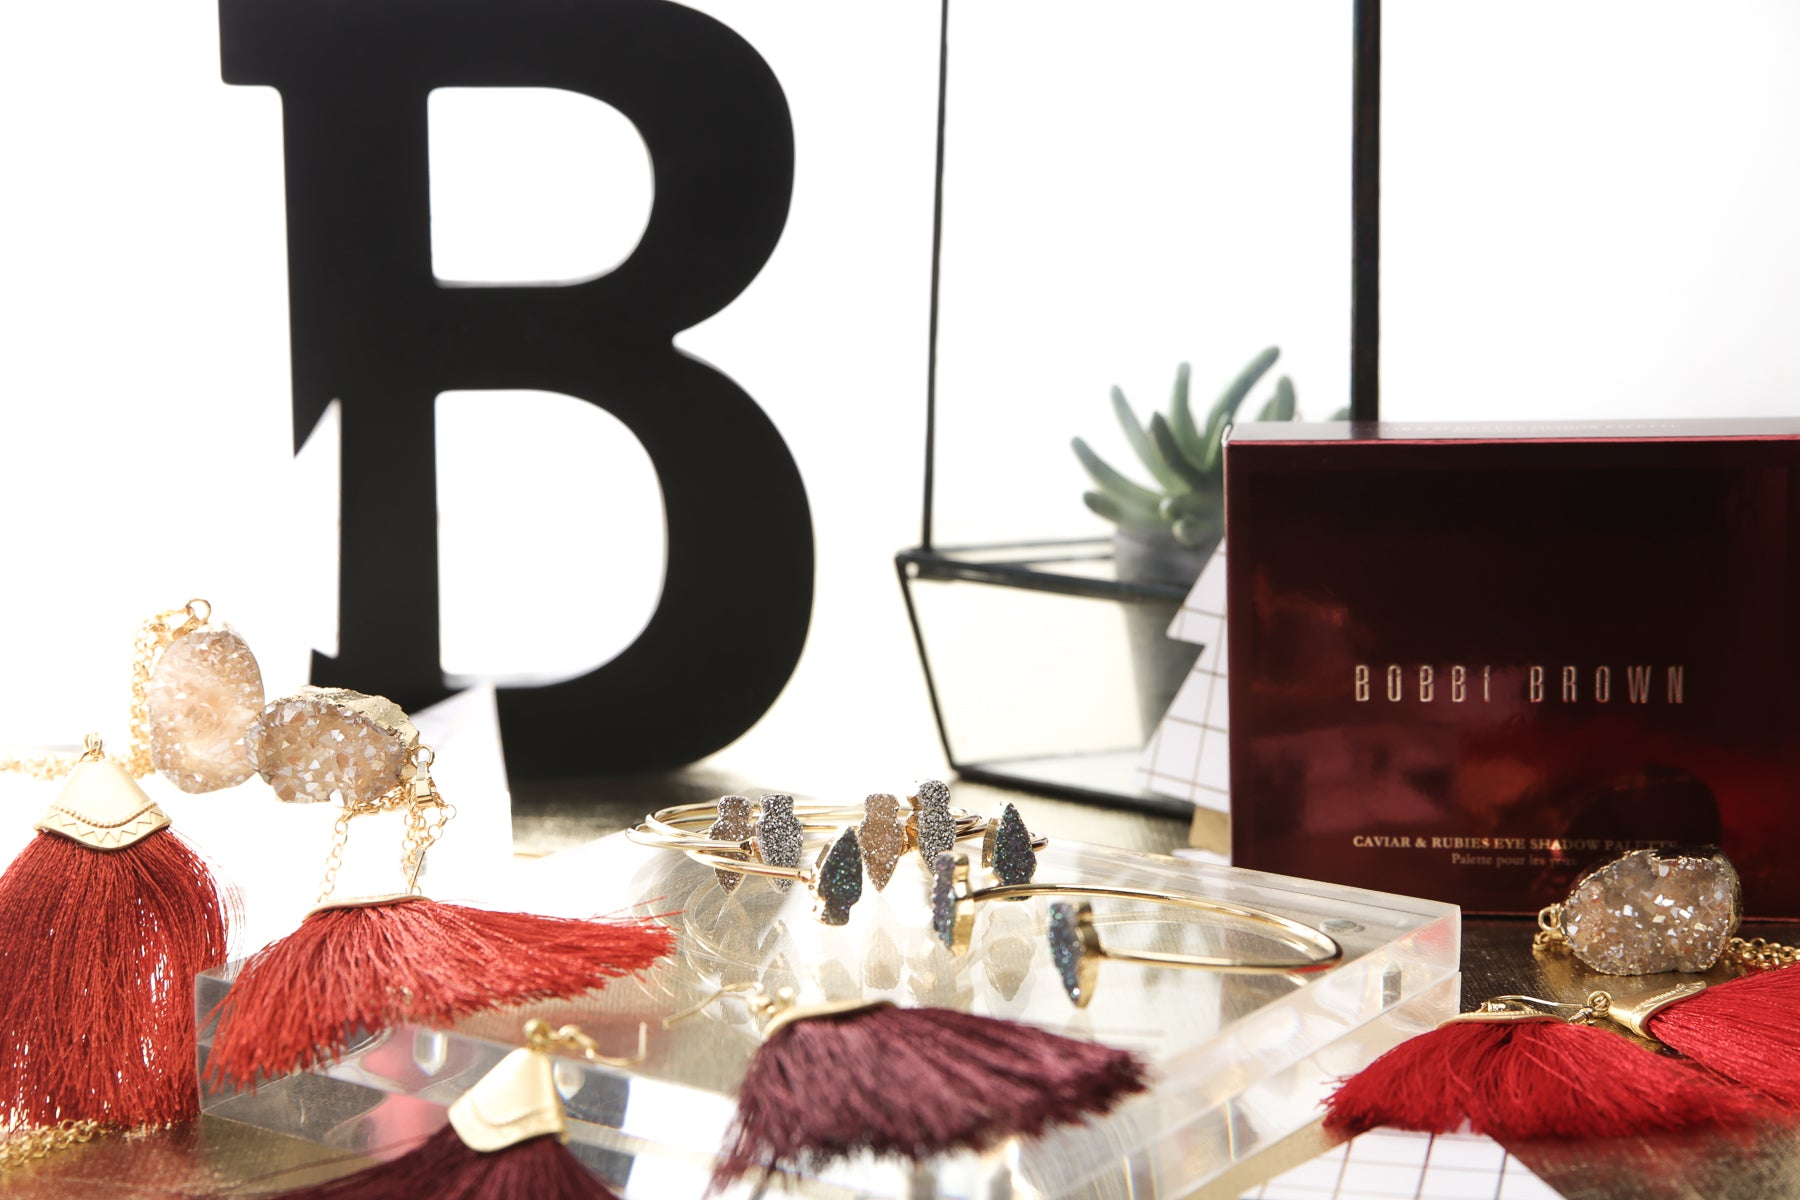 Heyjow x Bobbi Brown